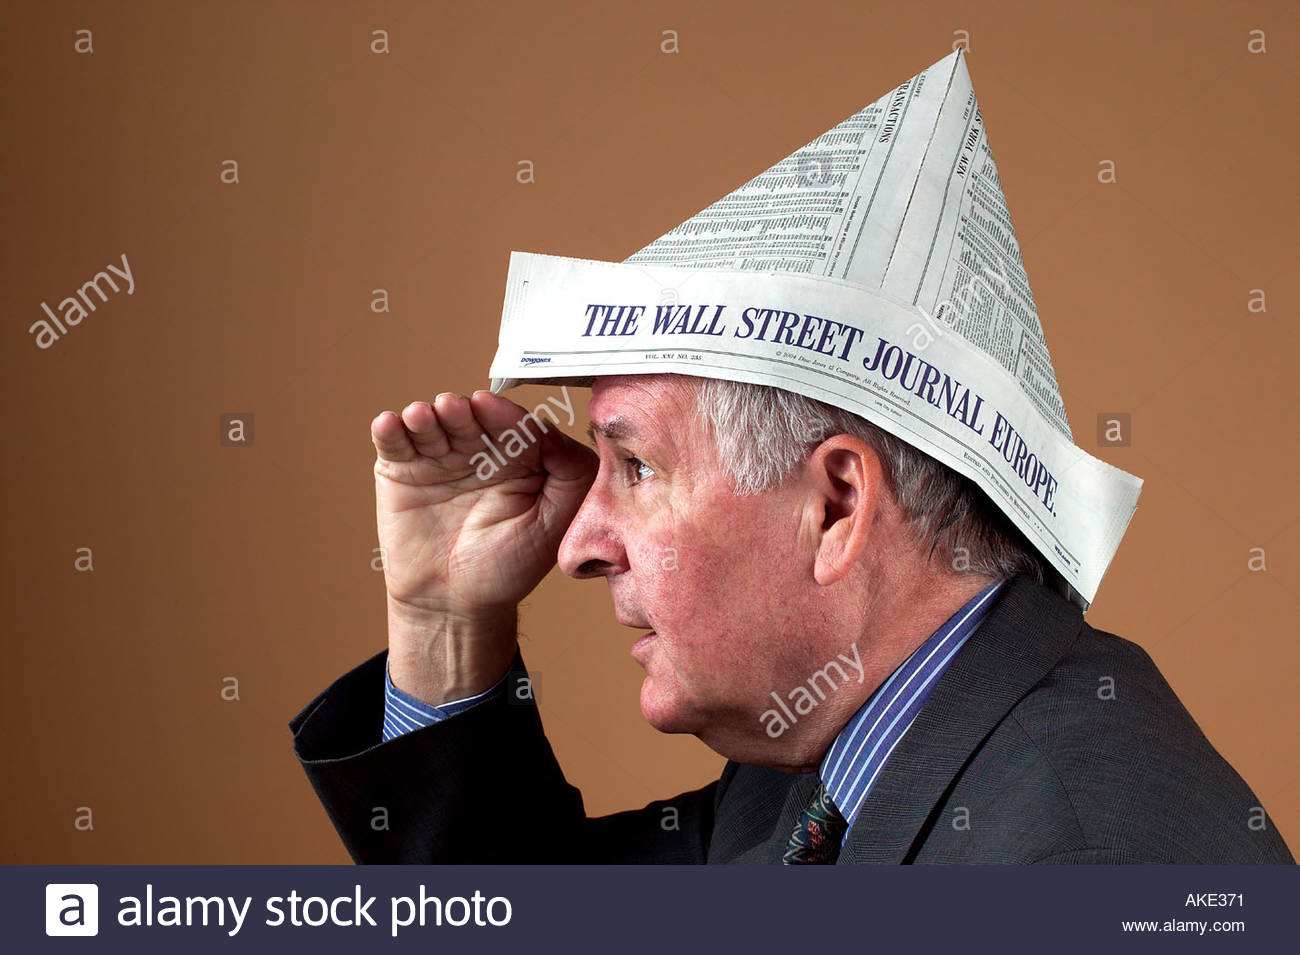 Look to the financial future - Stock Image